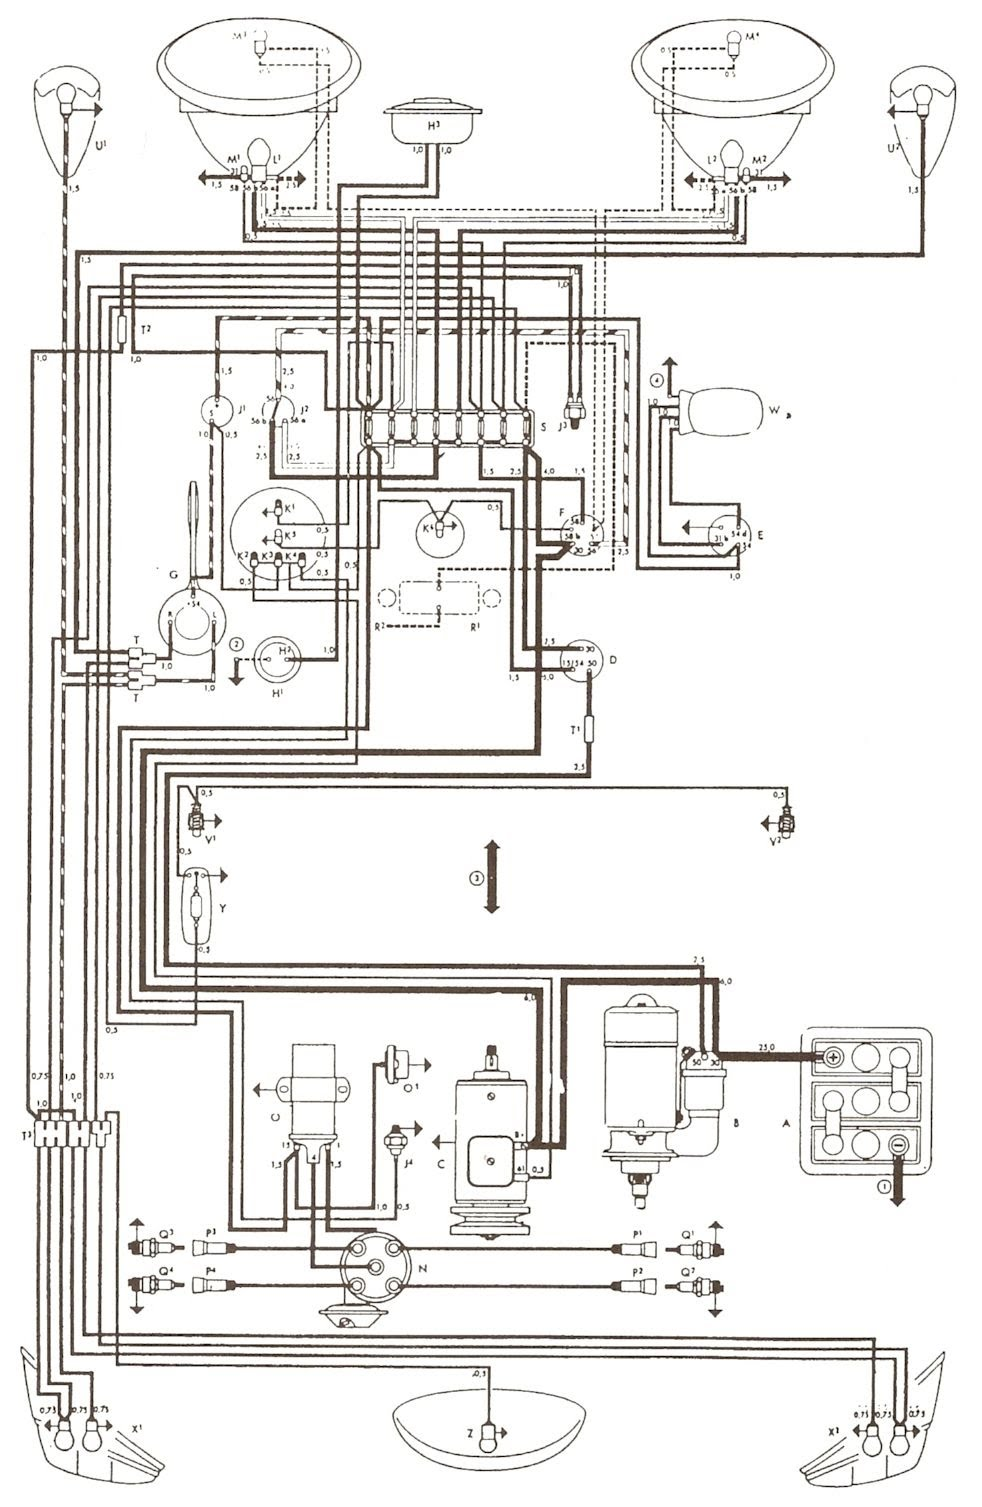 Wiring Diagrams Ignition Switch For Vw Bug, Wiring, Get